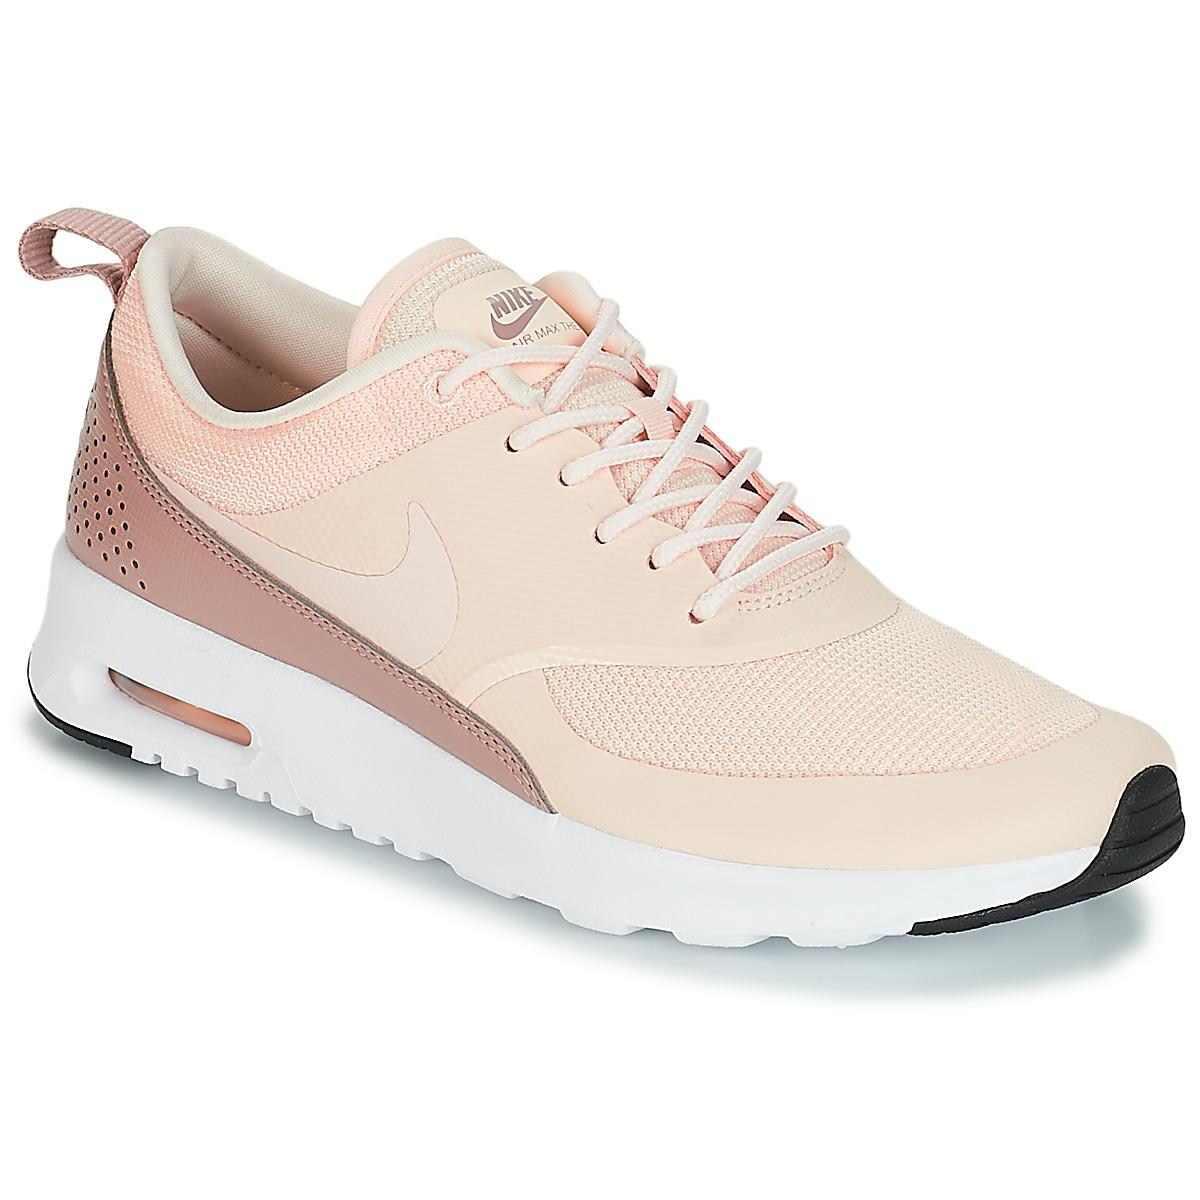 97369987b85 Nike Air Max Thea W Shoes (trainers) in Pink - Lyst